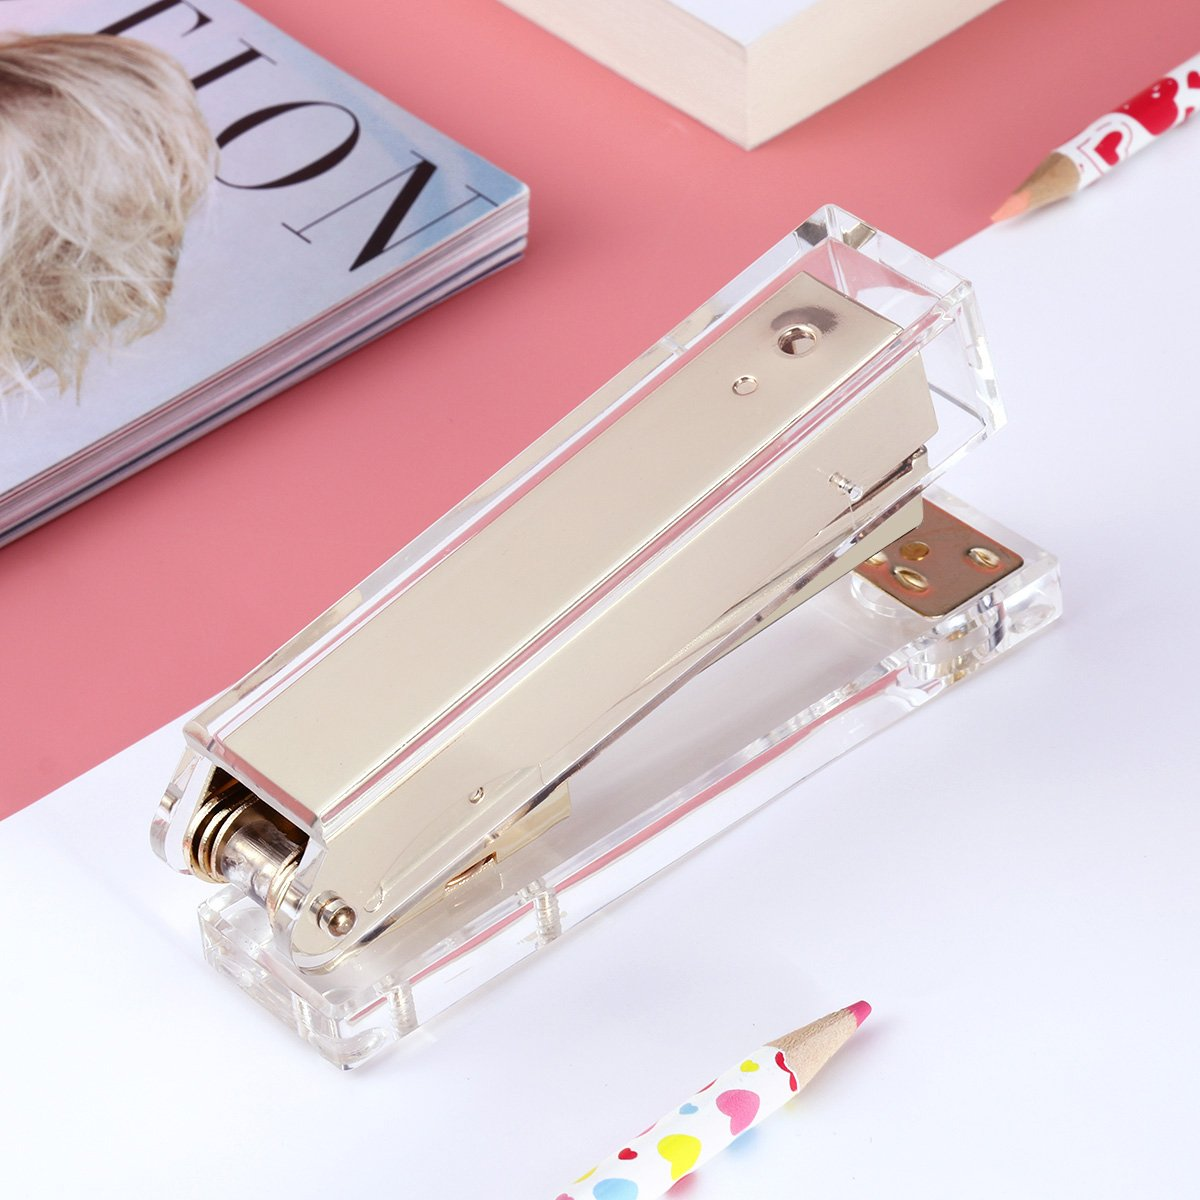 TOYMYTOY Acrylic Clear Desktop Staplers,Classic Desk Staplers for Office, School Use (Gold) by TOYMYTOY (Image #5)